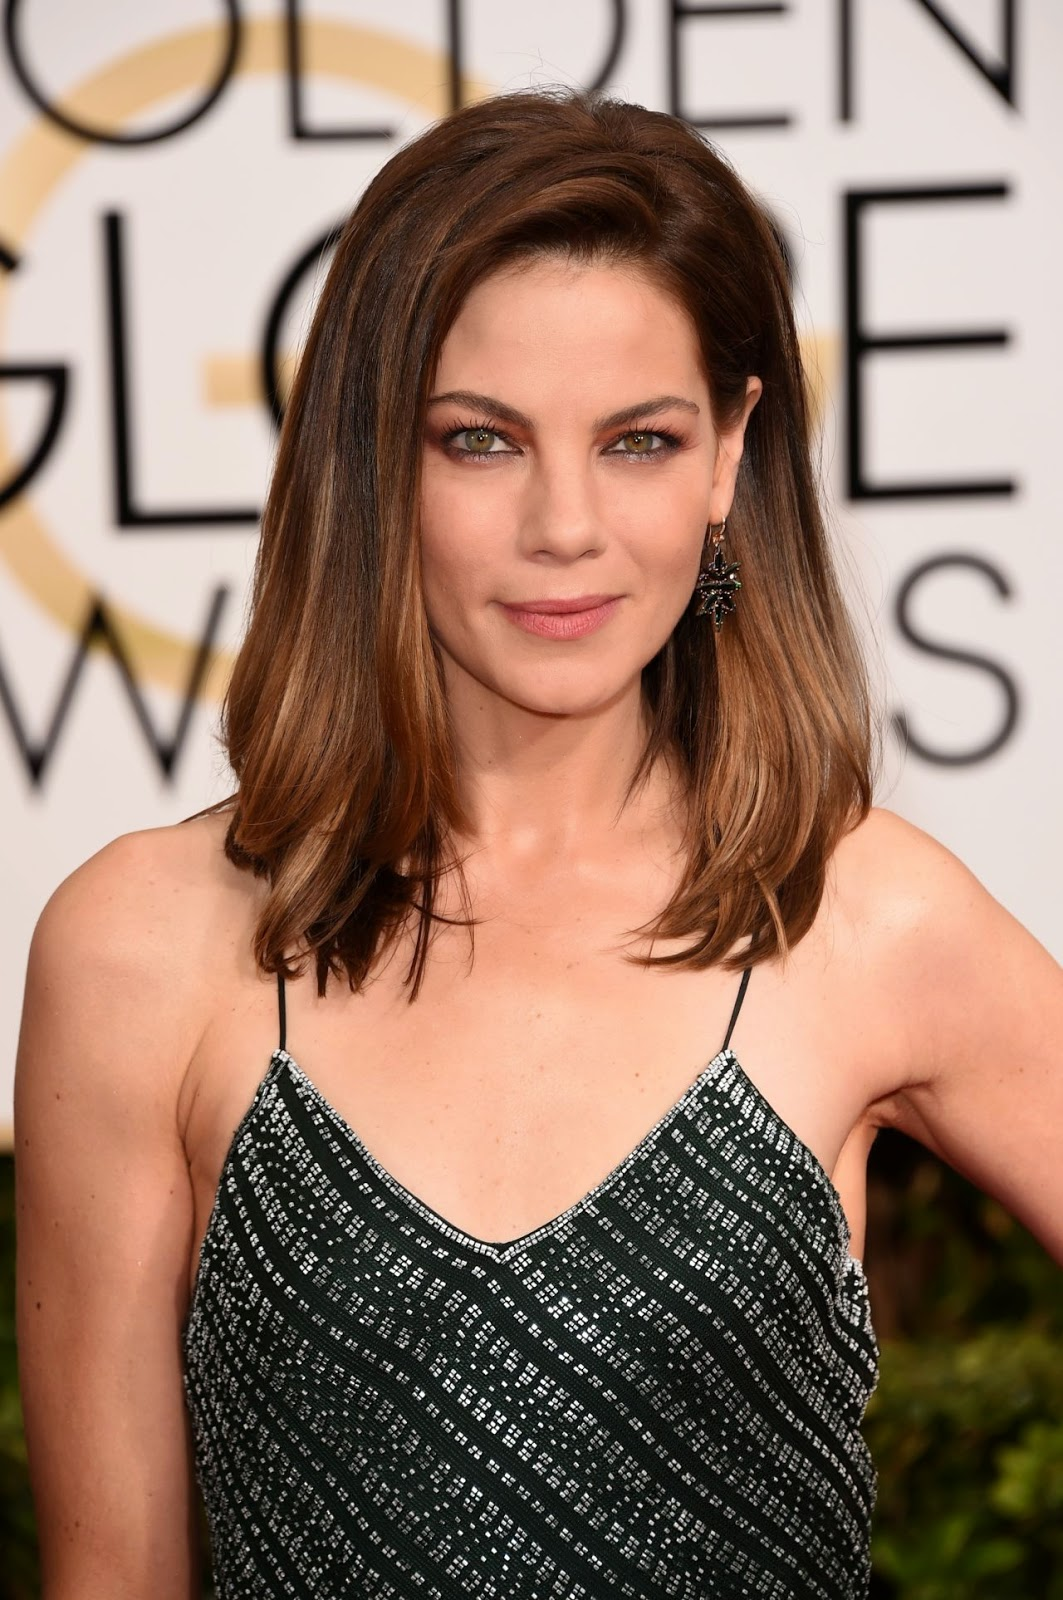 Michelle Monaghan stuns in a slinky dress at the 2015 Golden Globes